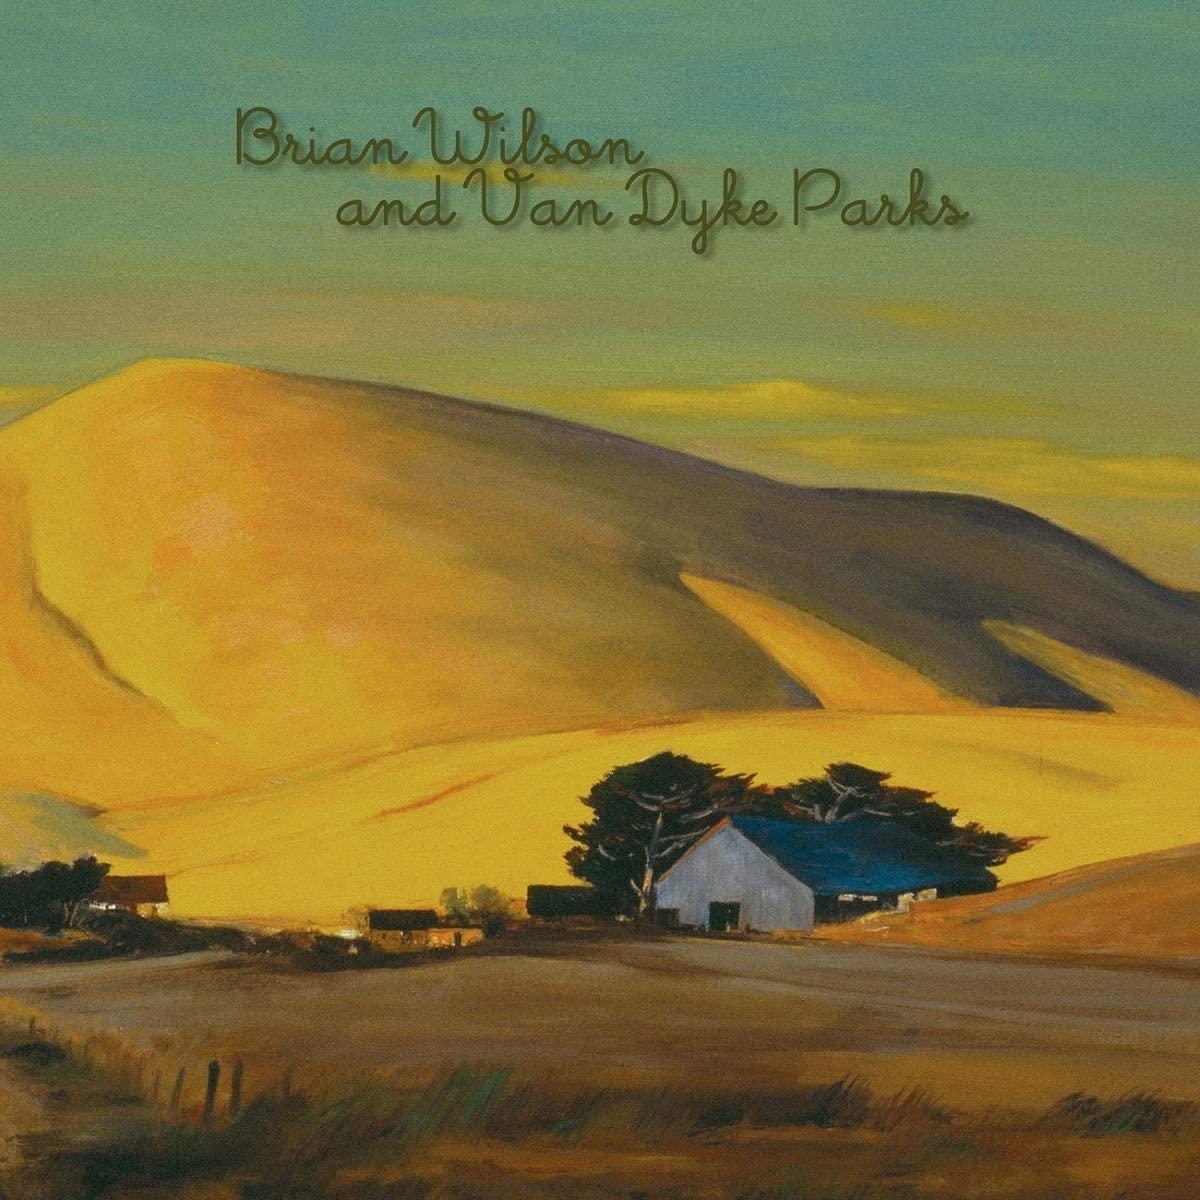 0816651018758 Omnivore Recordings  Brian Wilson And Van Dyke Parks Orange Crate Art (2LP)